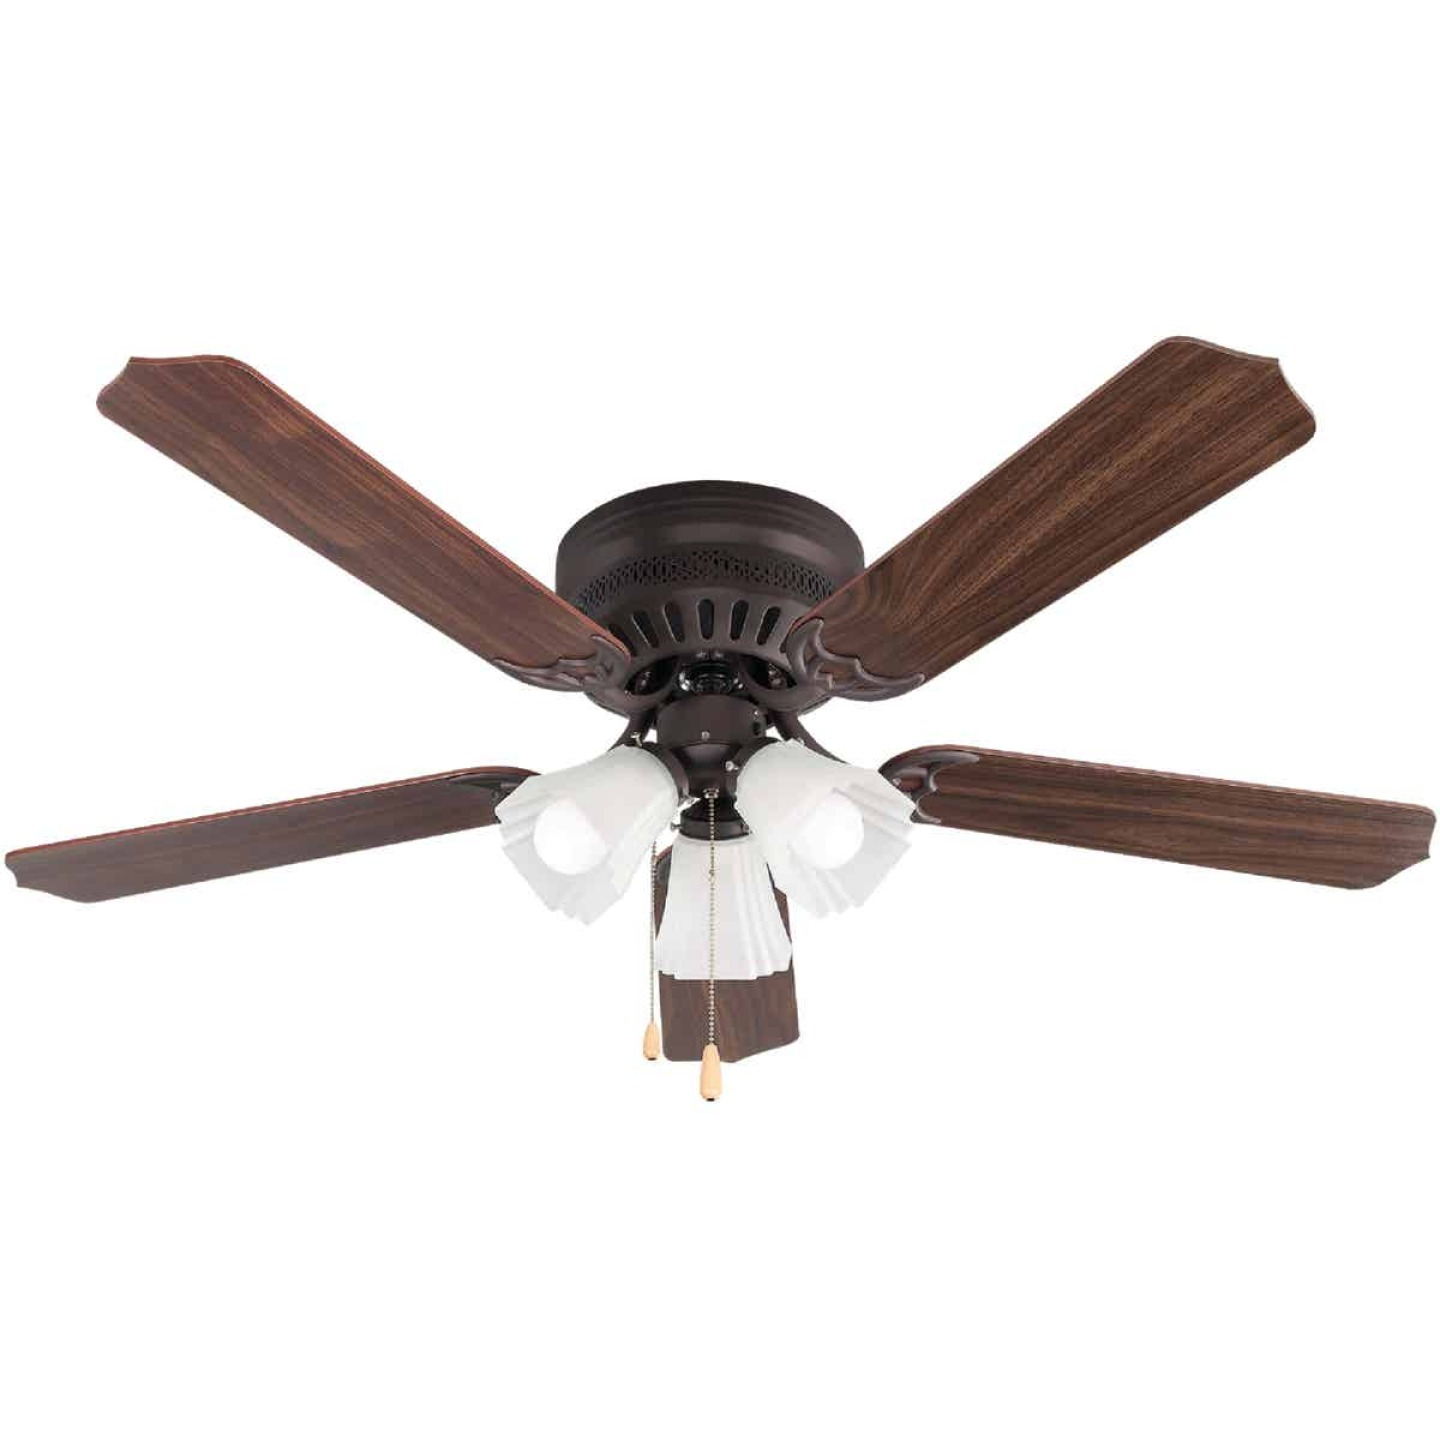 Home Impressions Piedmont 52 In. Oil Rubbed Bronze Ceiling Fan with Light Kit Image 1